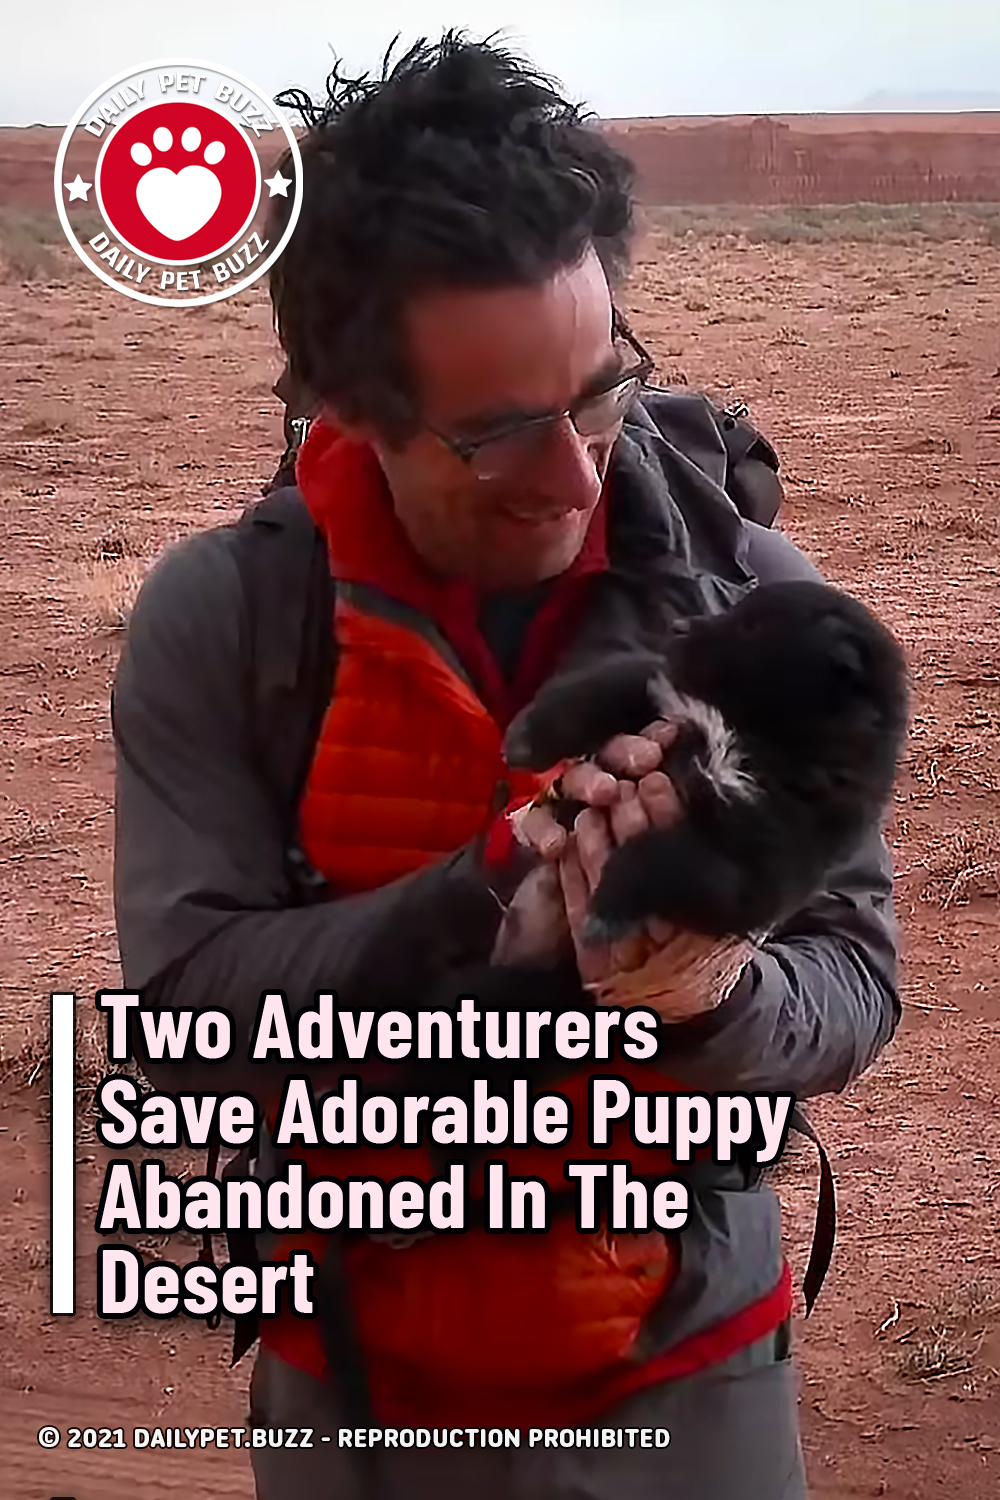 Two Adventurers Save Adorable Puppy Abandoned In The Desert